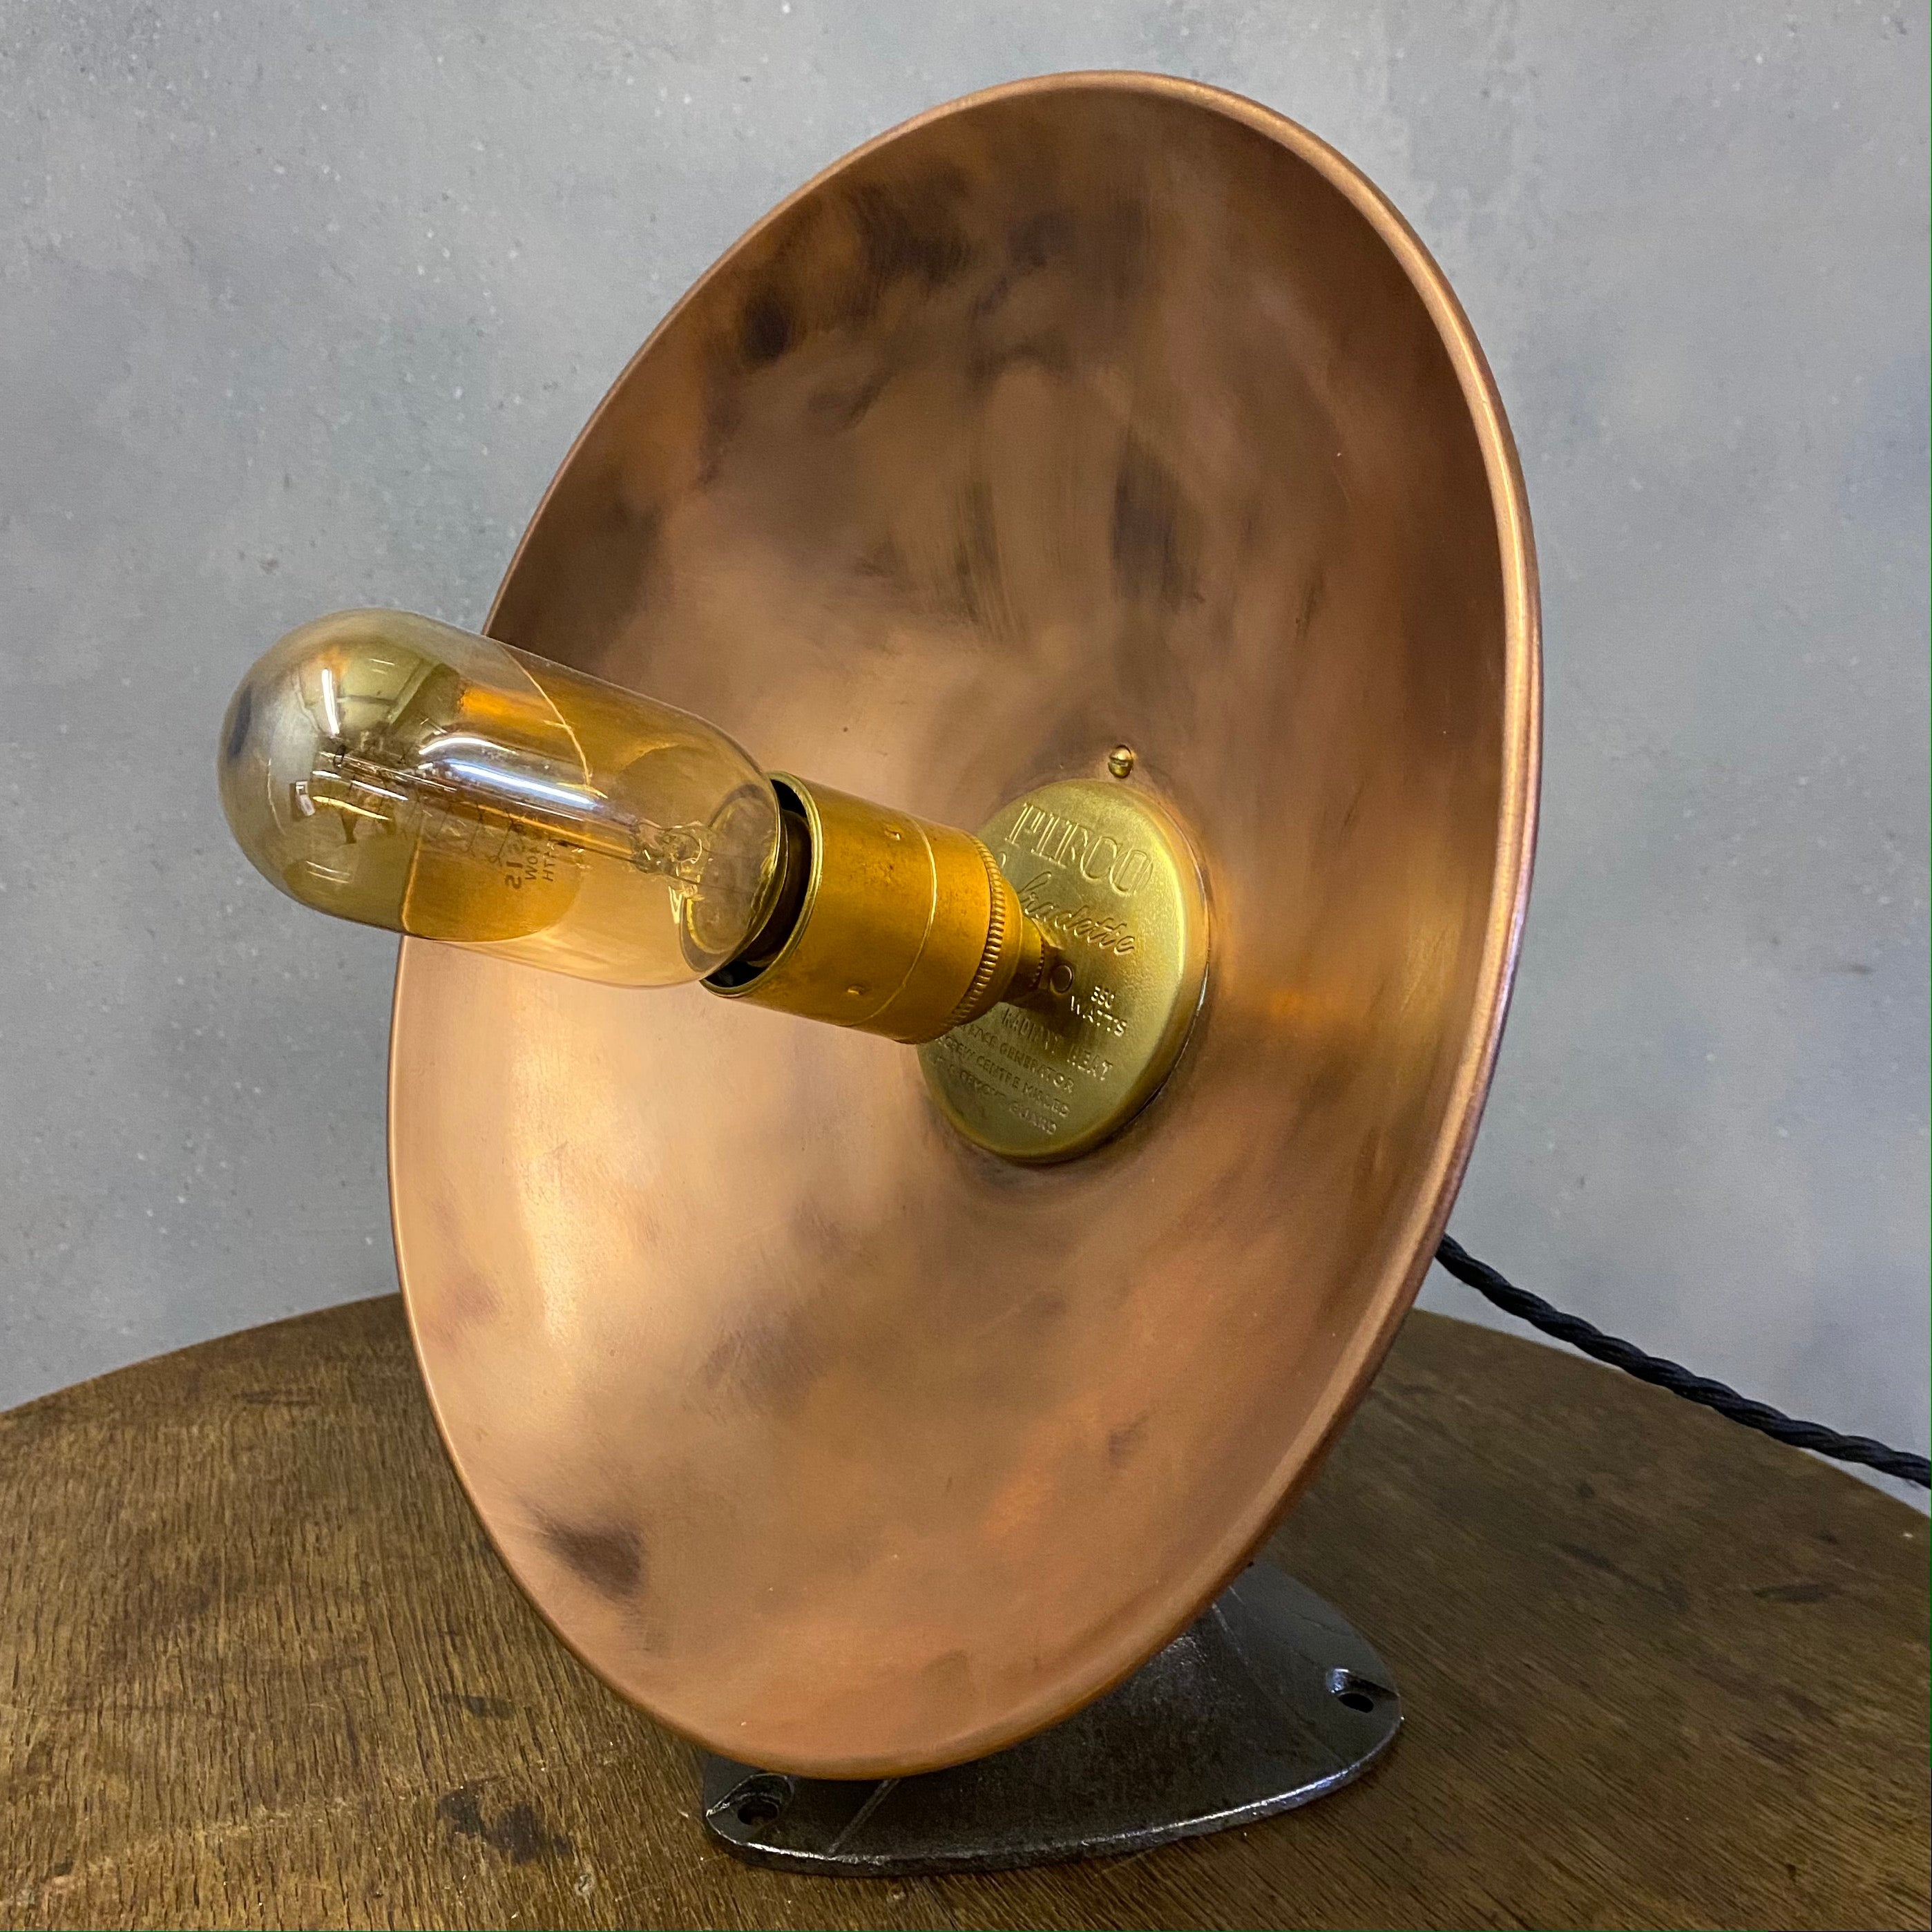 Pifco converted lamp